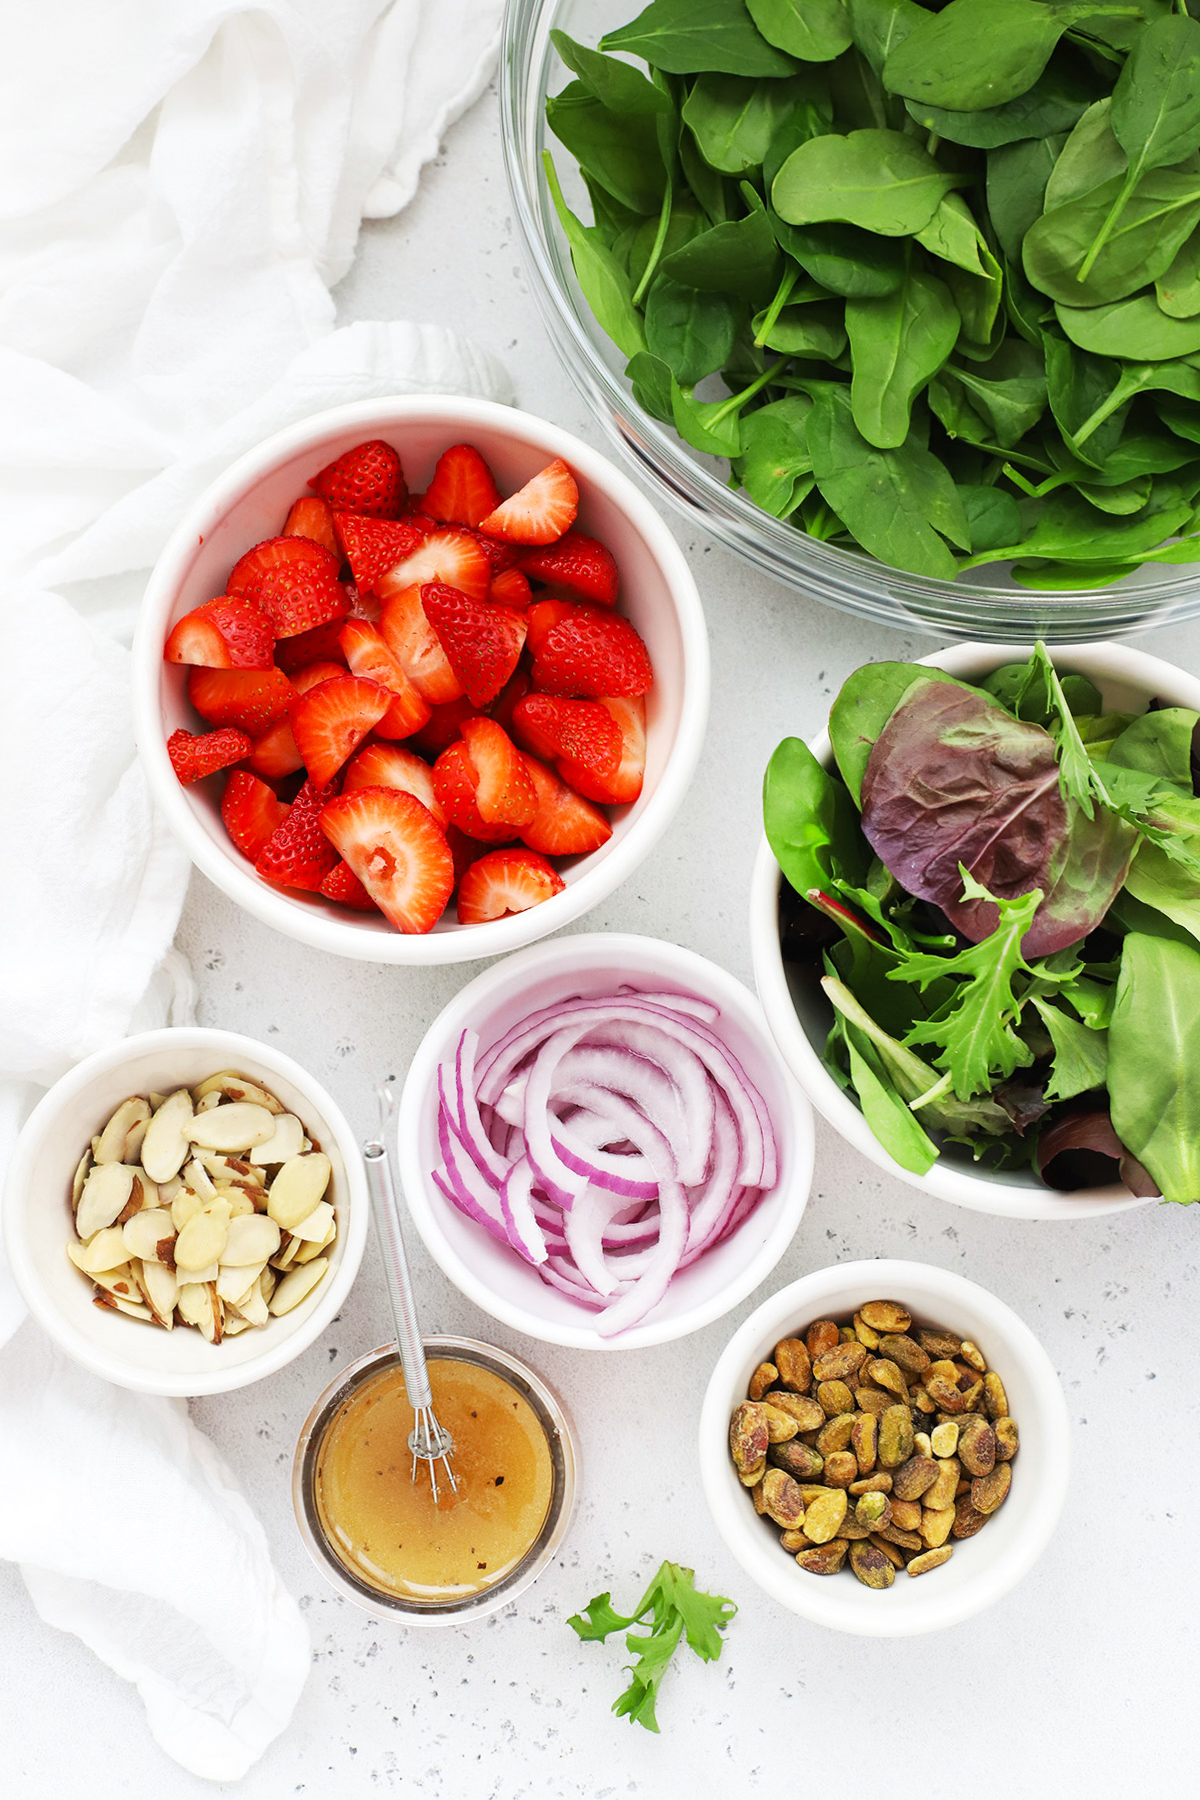 Overhead view of ingredients for strawberry spinach salad on a white background